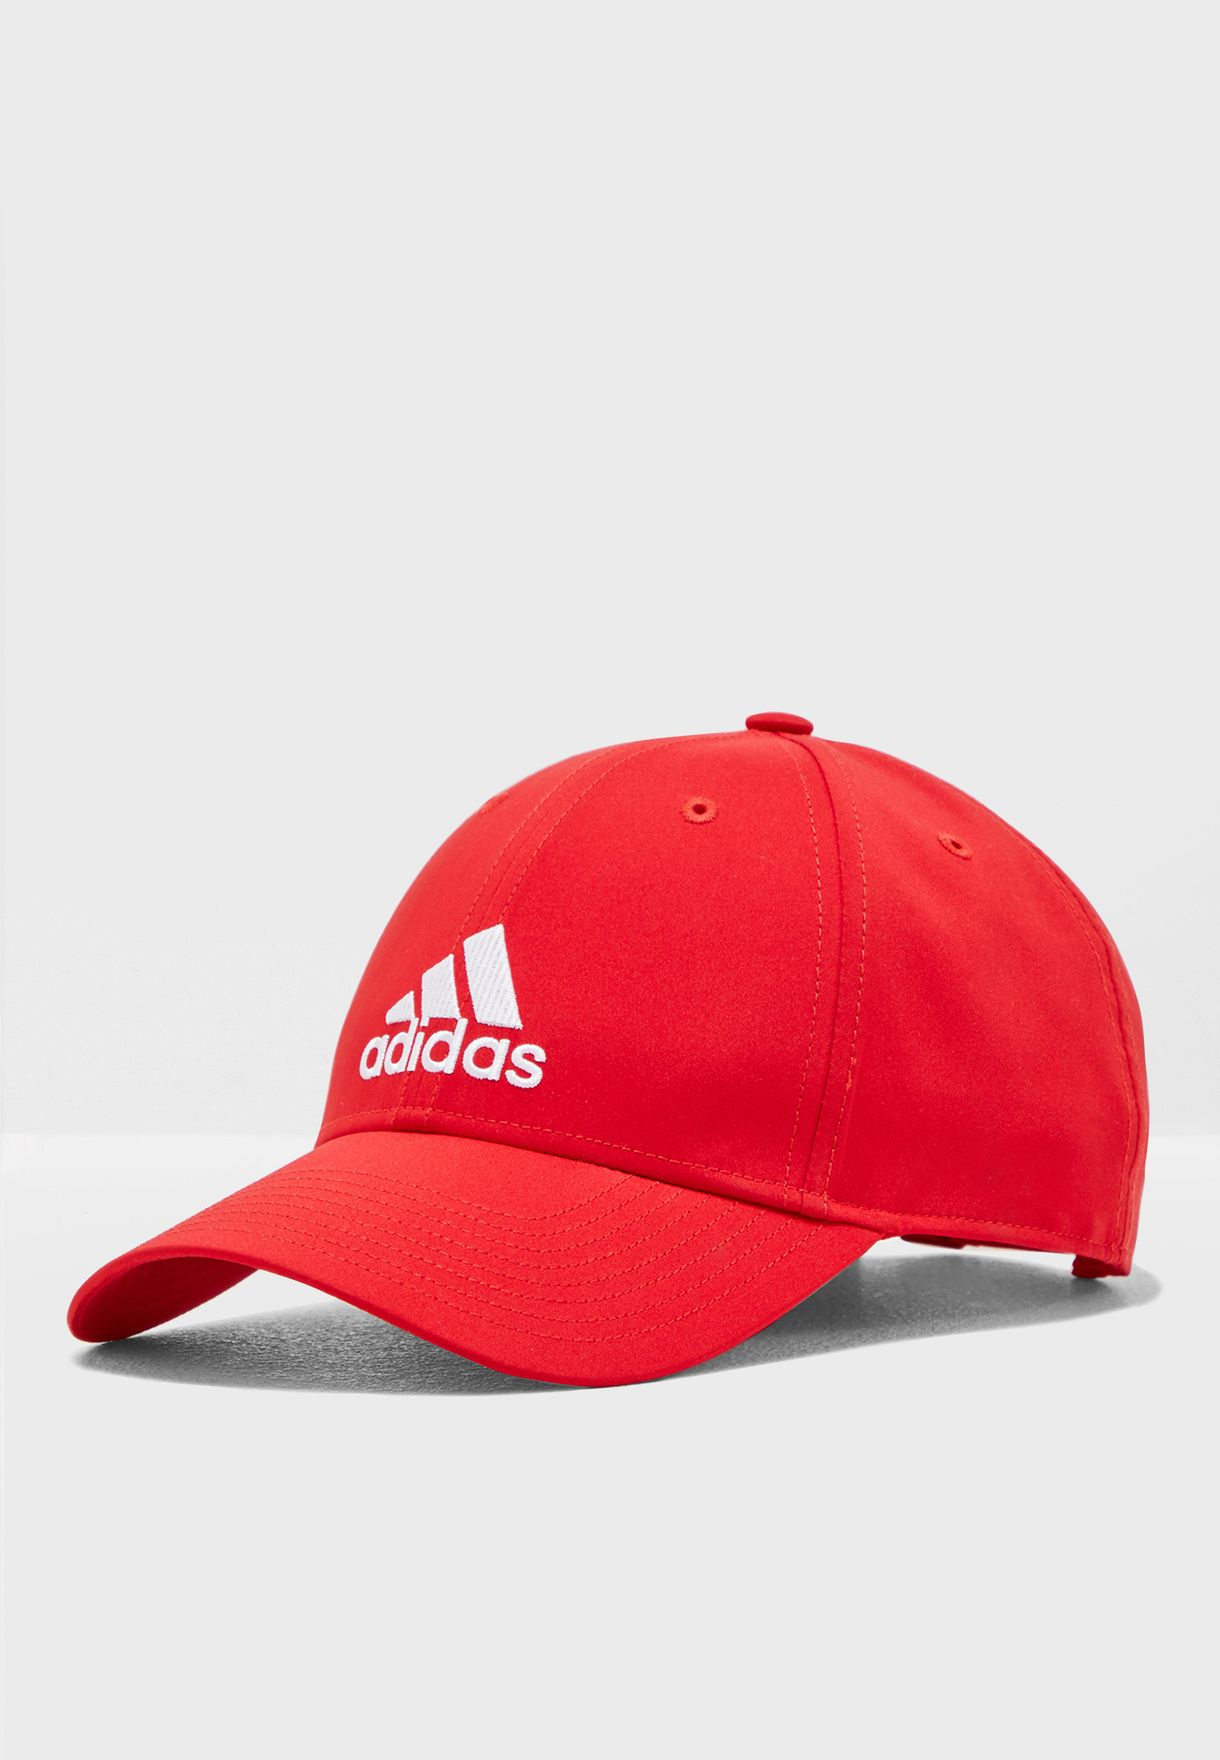 26ae856b34a Shop adidas red 6 Panel Embroidery Cap DT8556 for Men in UAE ...